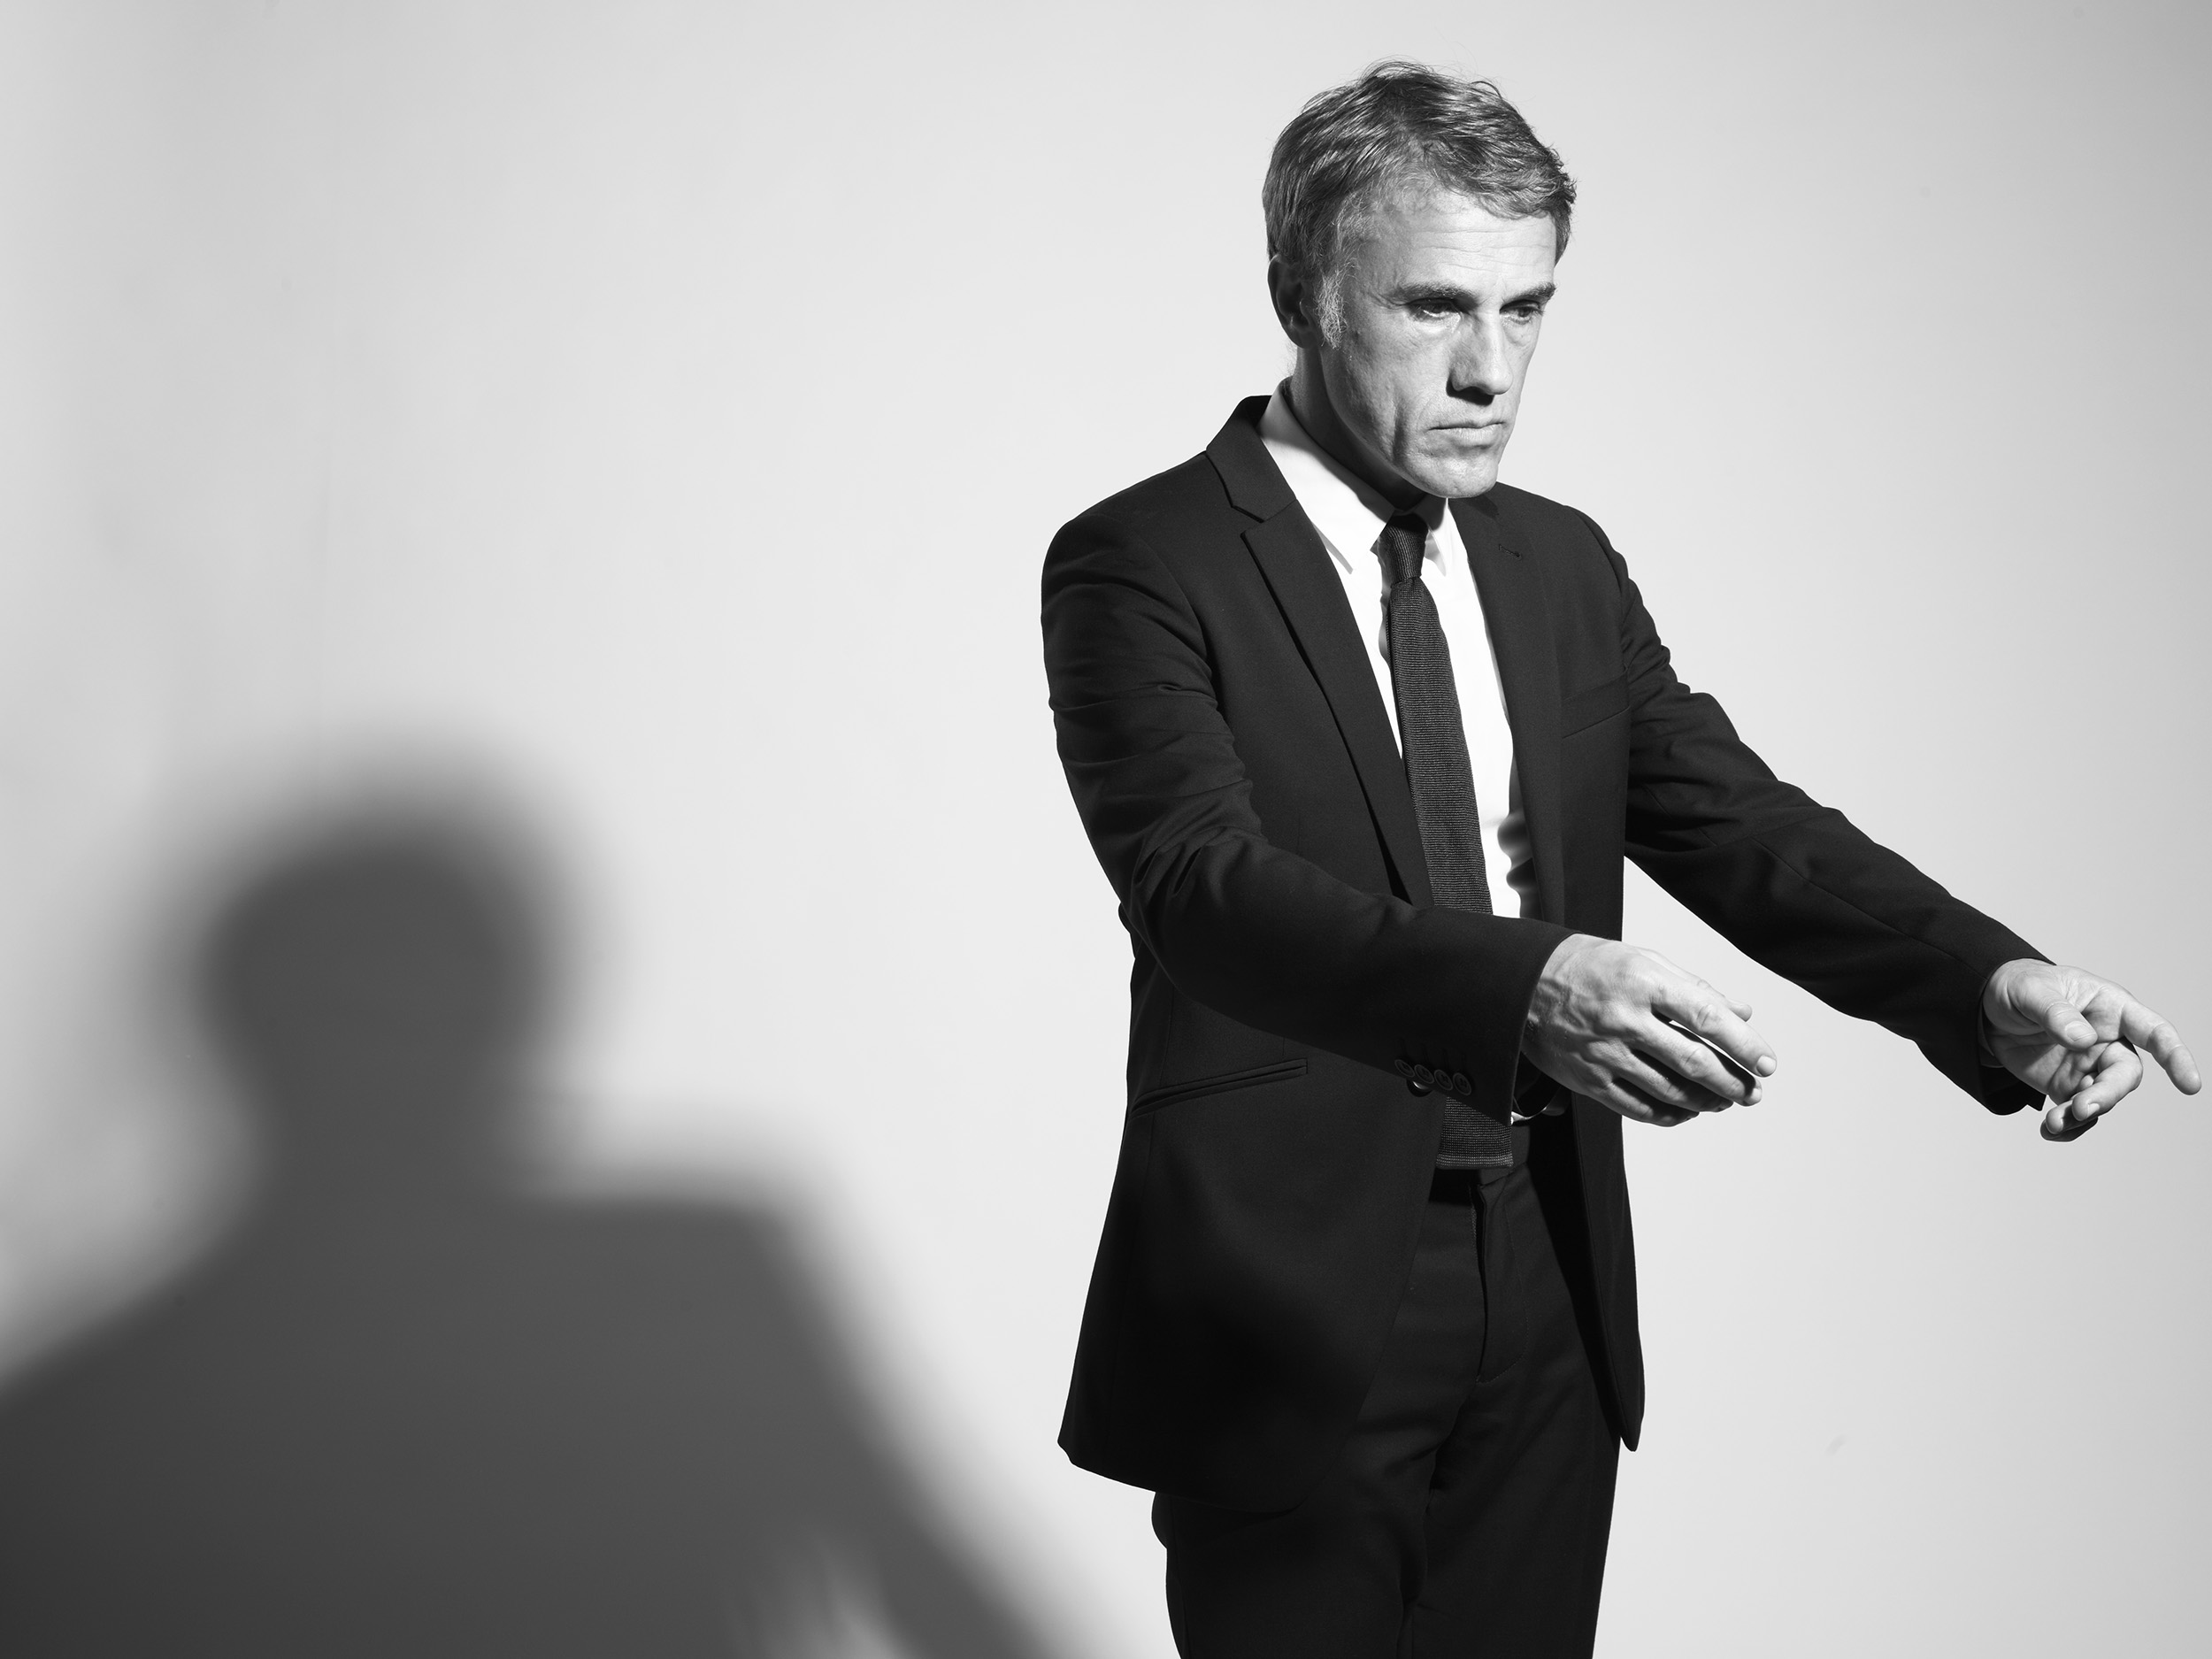 Christoph-Waltz-by-robert-ascroft